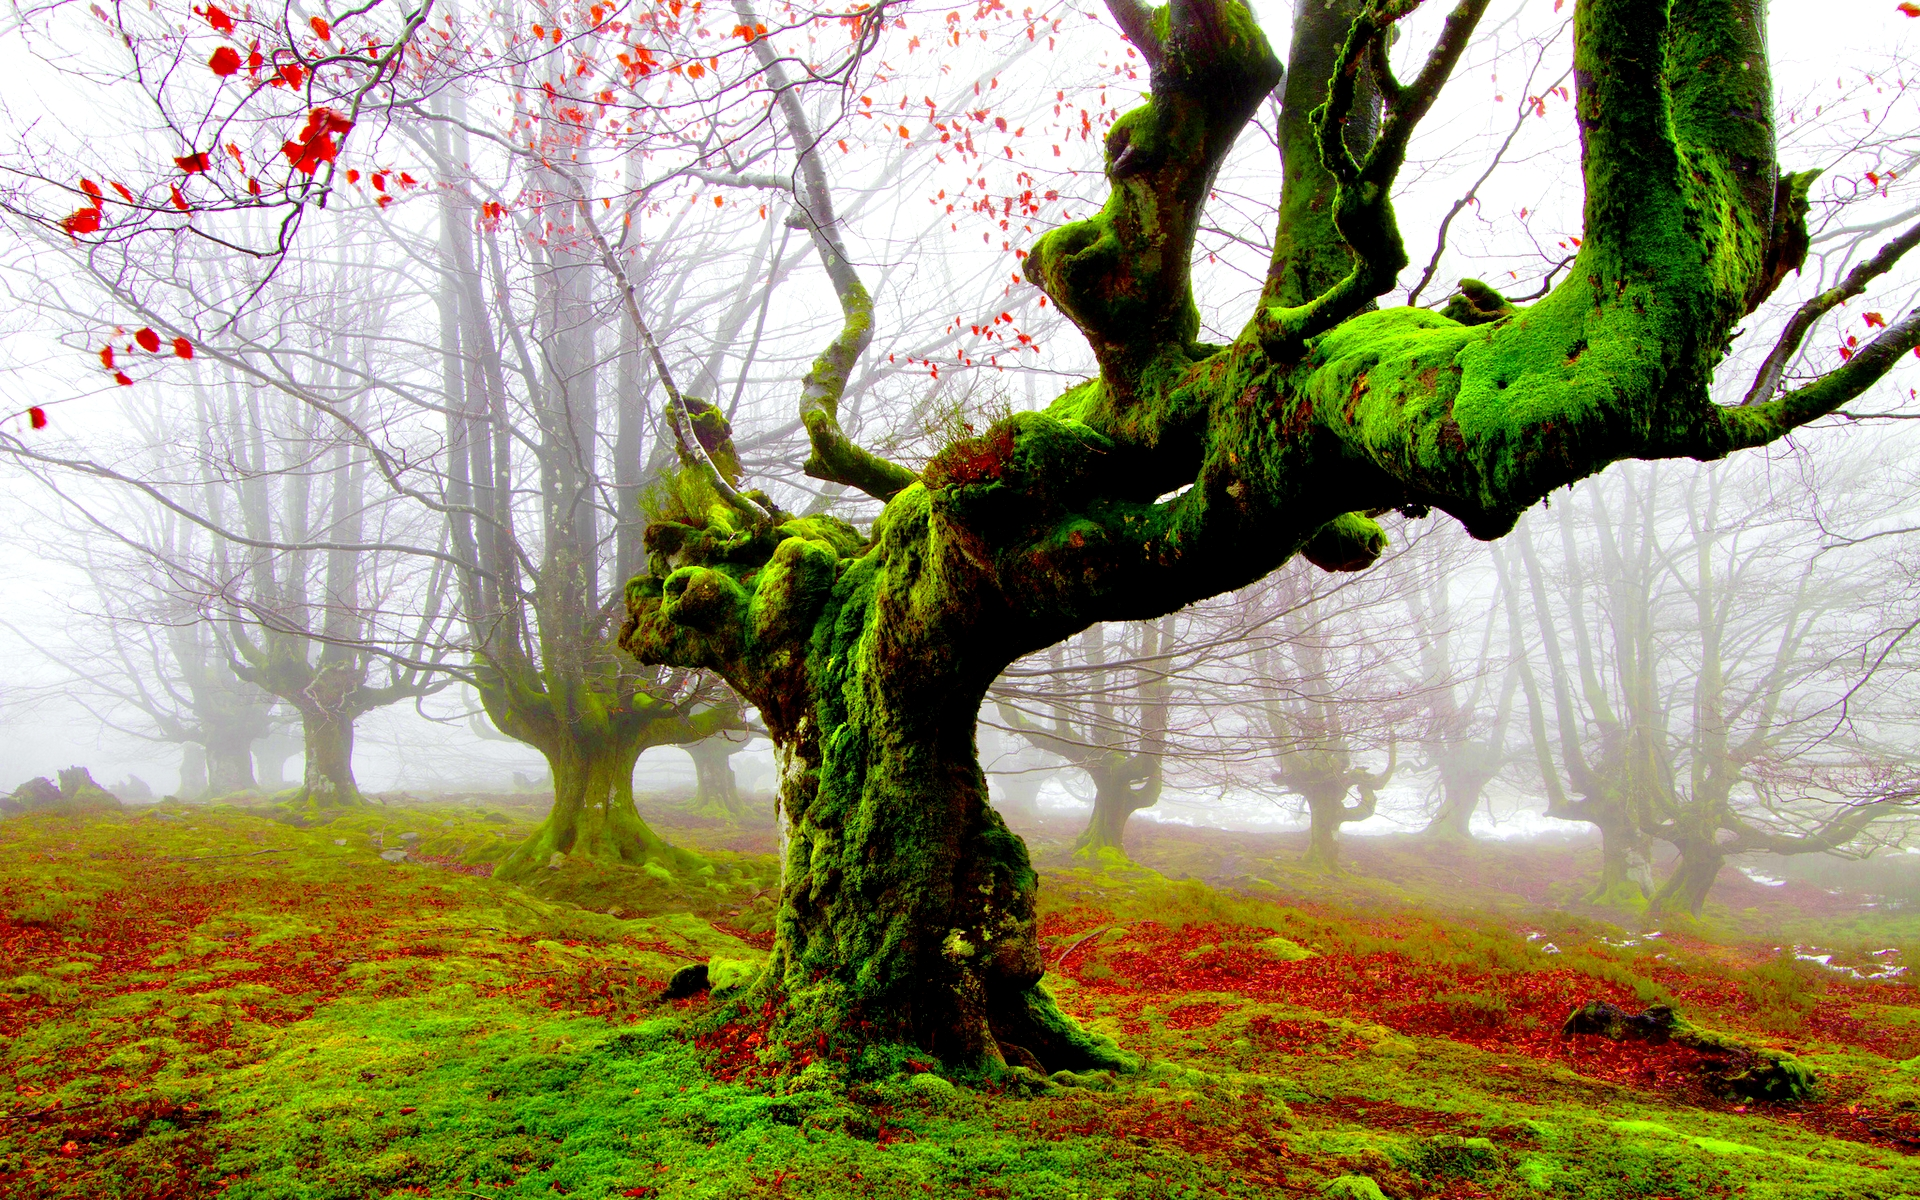 28 Lovely Hd Ice Cream Wallpapers: 28 Fantastic HD Moss Wallpapers